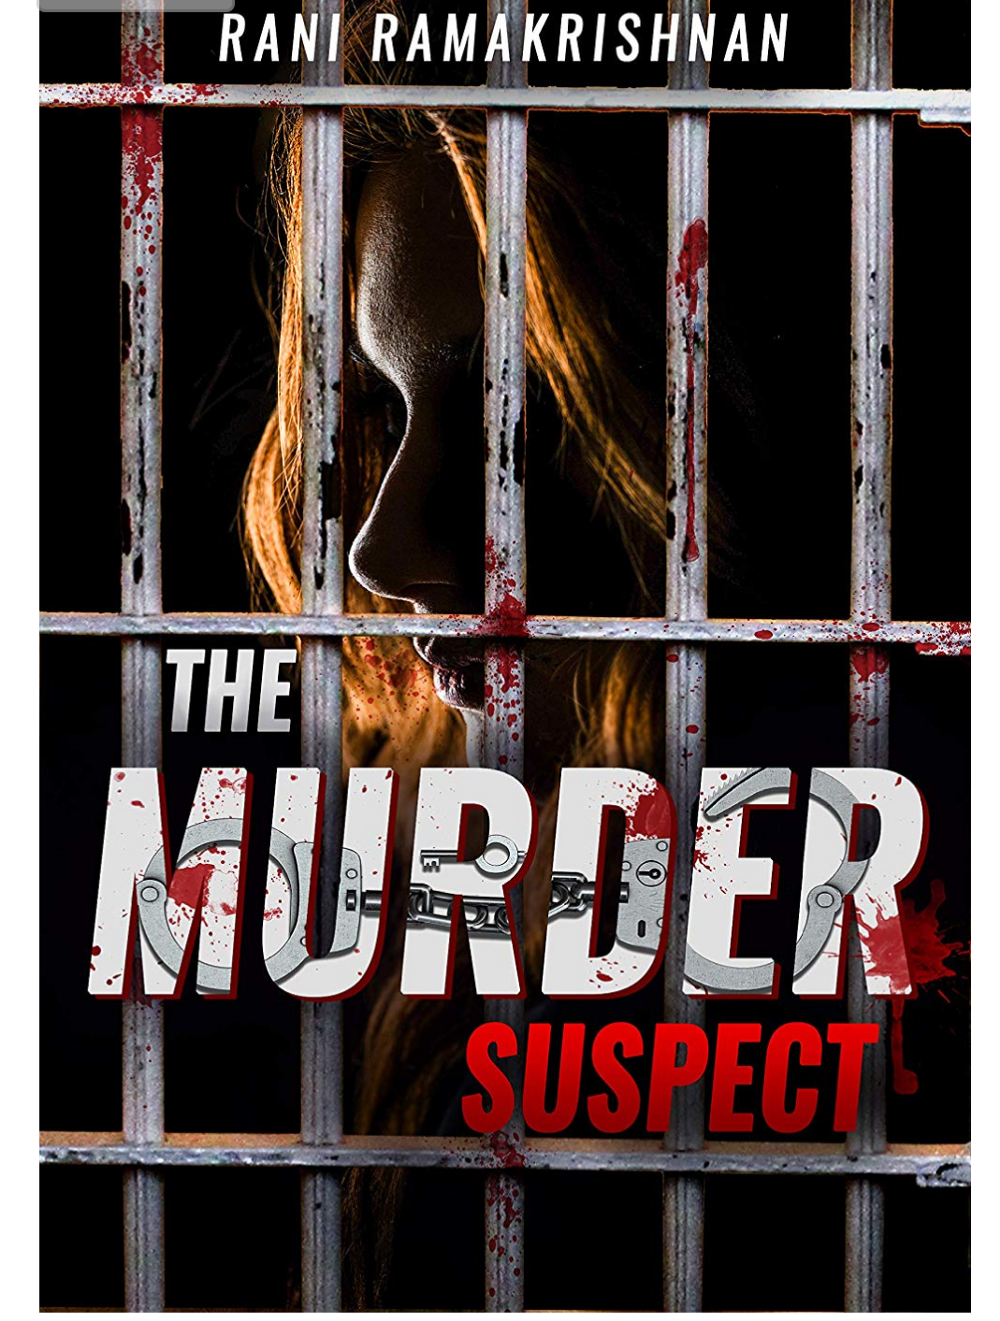 Book Review - The Murder Suspect by Rani Ramakrishnan